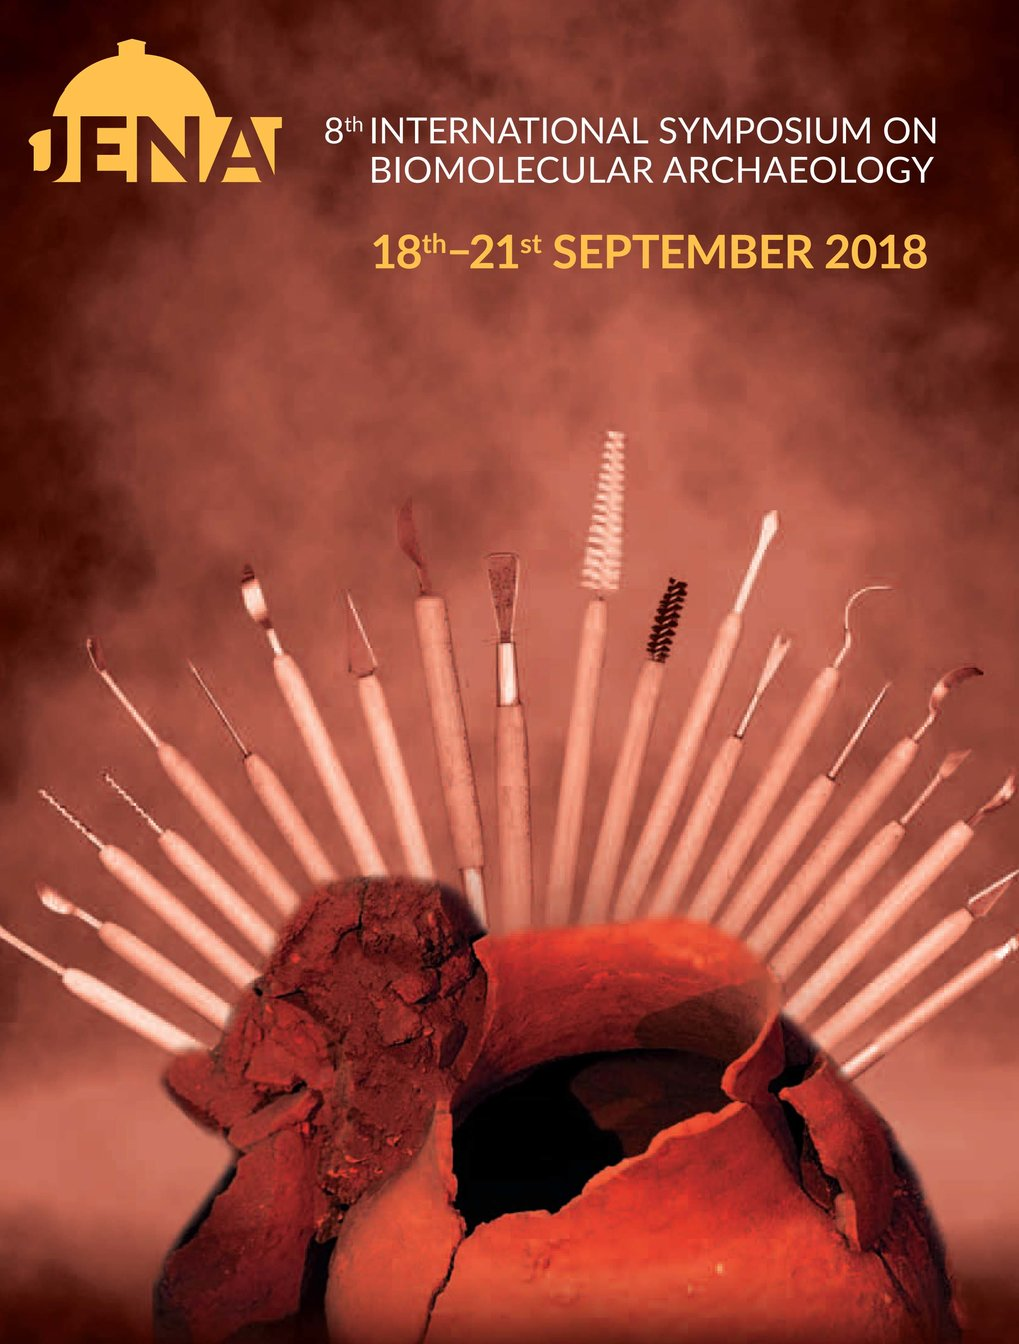 The 8th International Symposium on Biomolecular Archaeology (ISBA) will take place from 18–21 September 2018 at Friedrich-Schiller-University Jena, Germany. It is organized by members of the Department of Archaeogenetics of the Max Planck Institute for the Science of Human History.